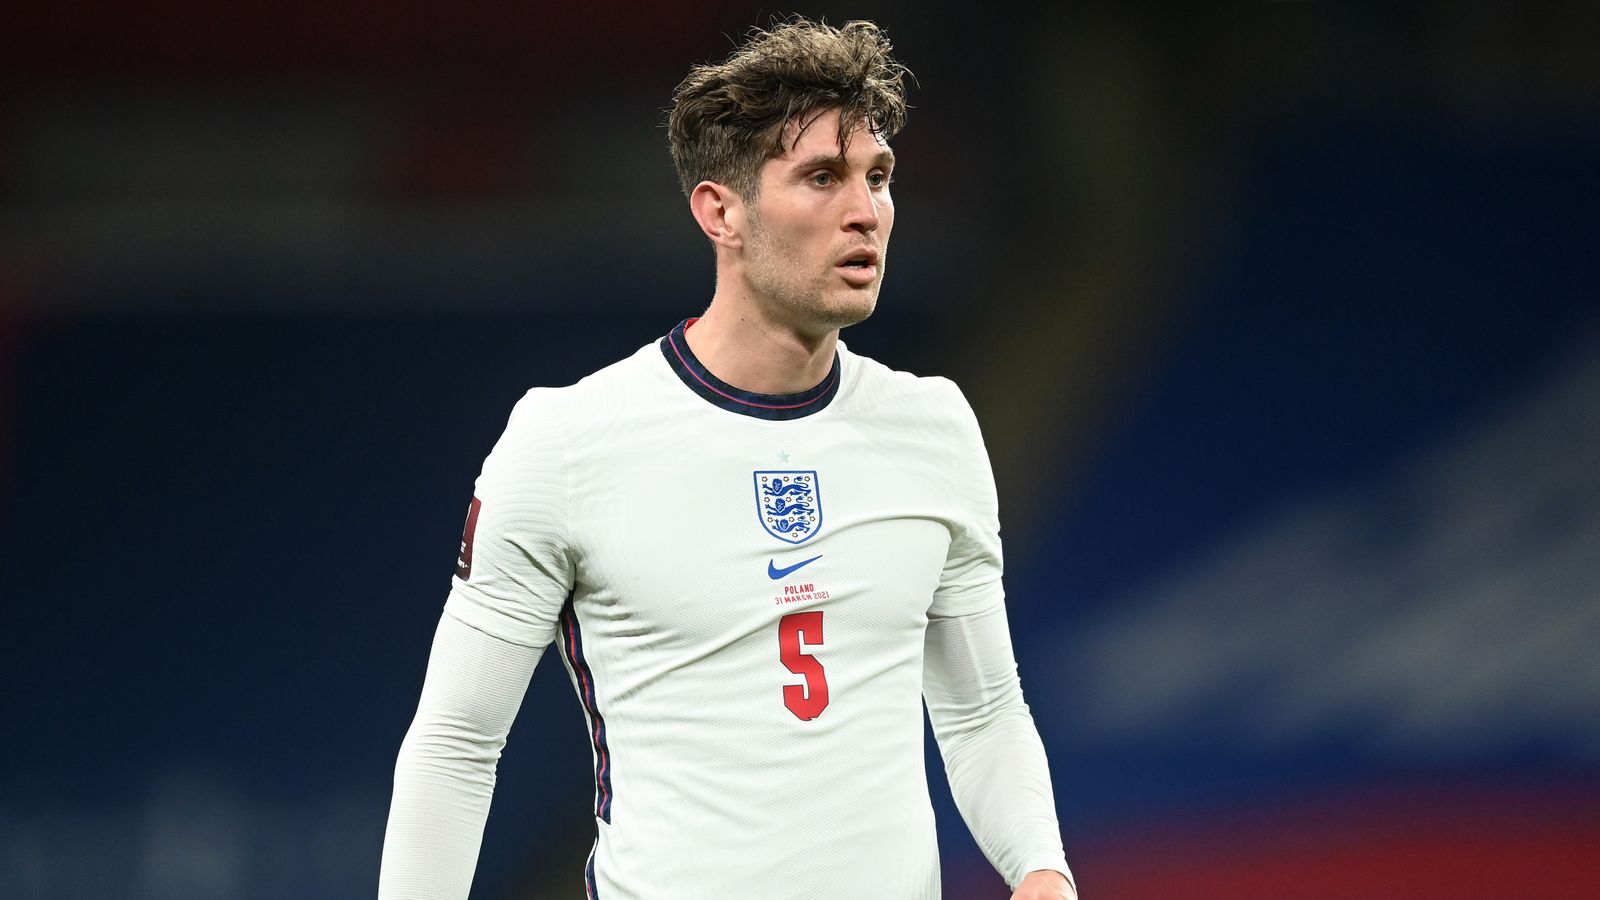 John Stones' recovery from England blunder impresses Gareth Southgate in decisive win over Poland |  football news